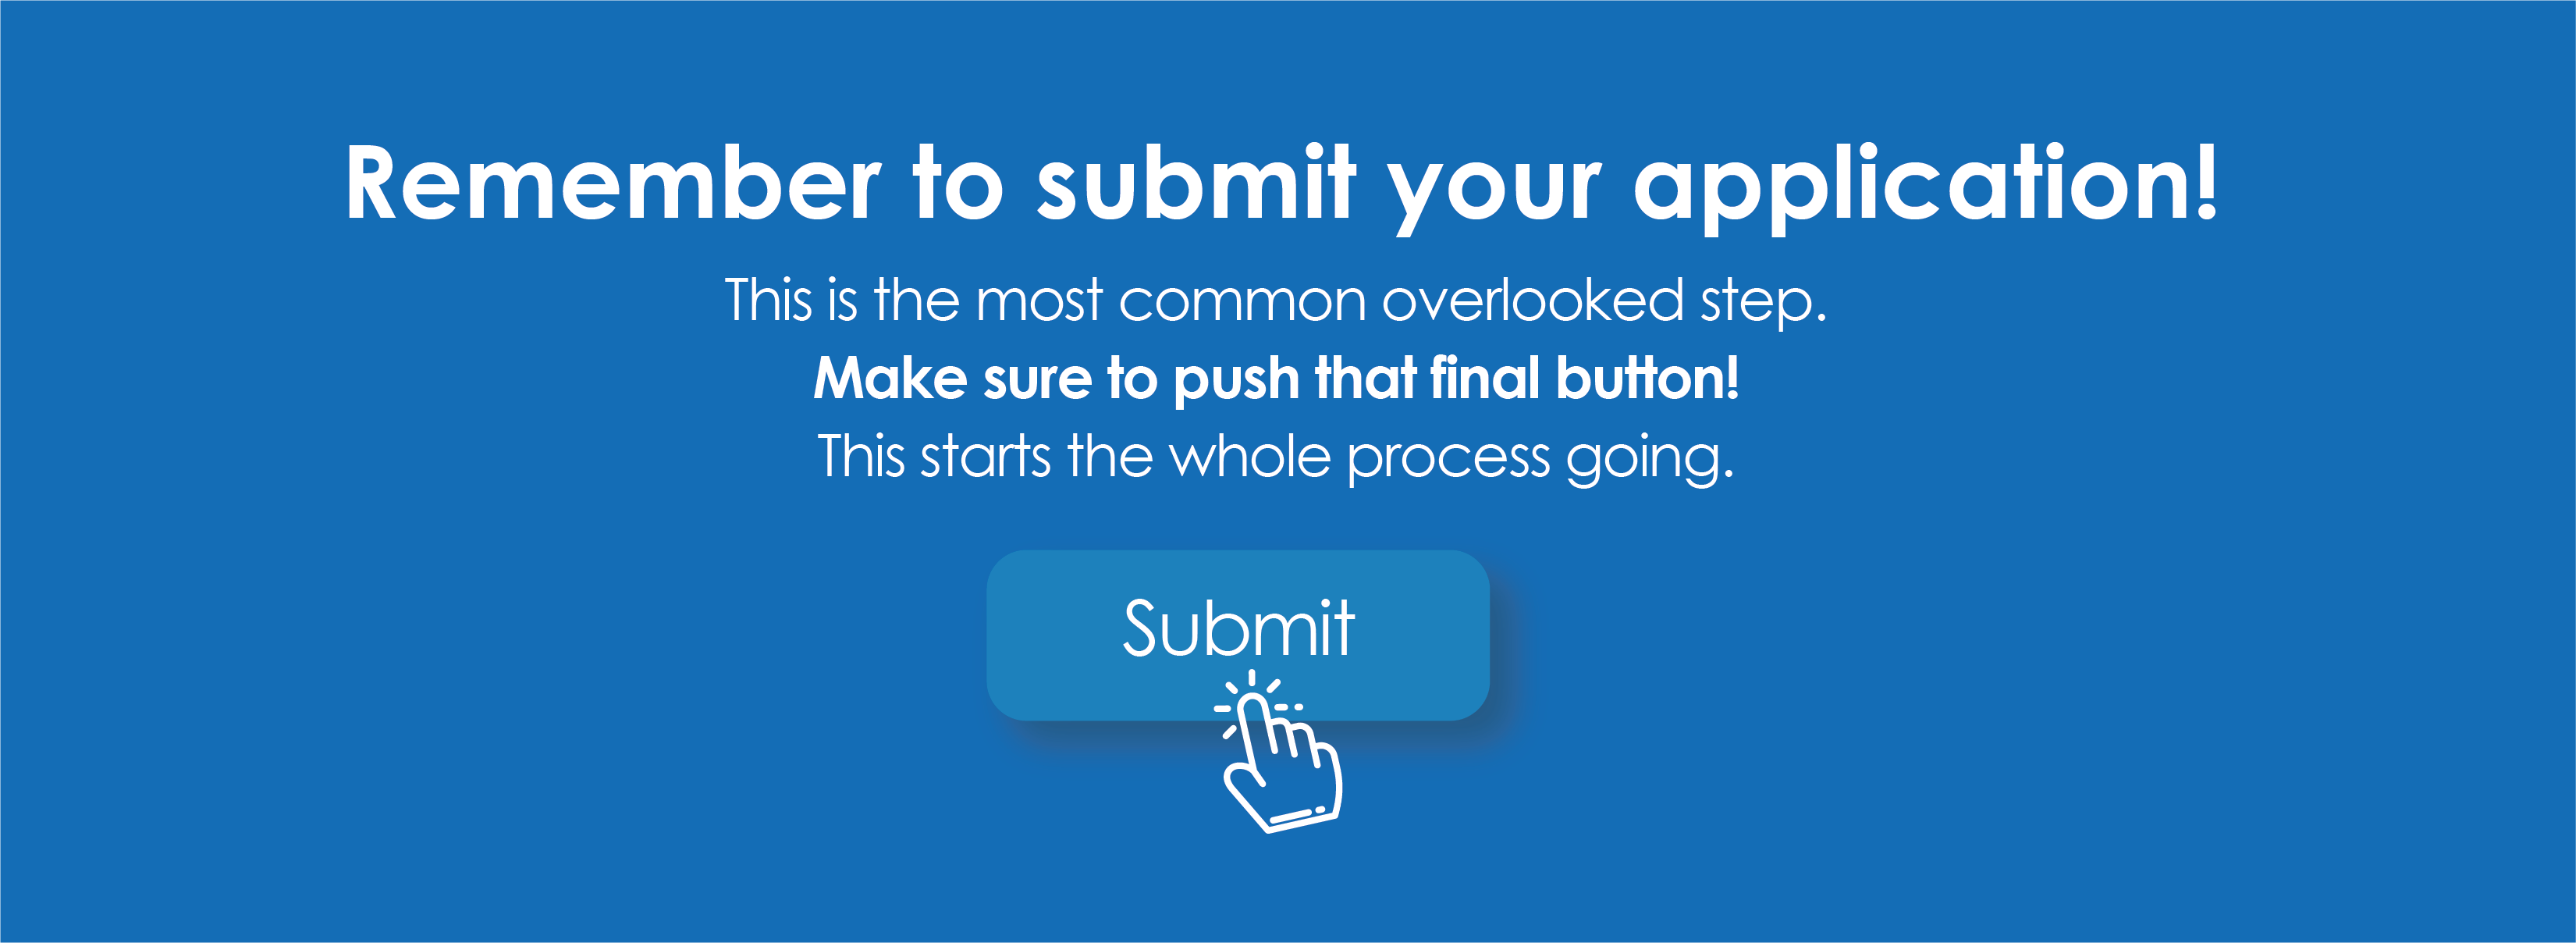 Make sure to push that final button!This starts the whole process